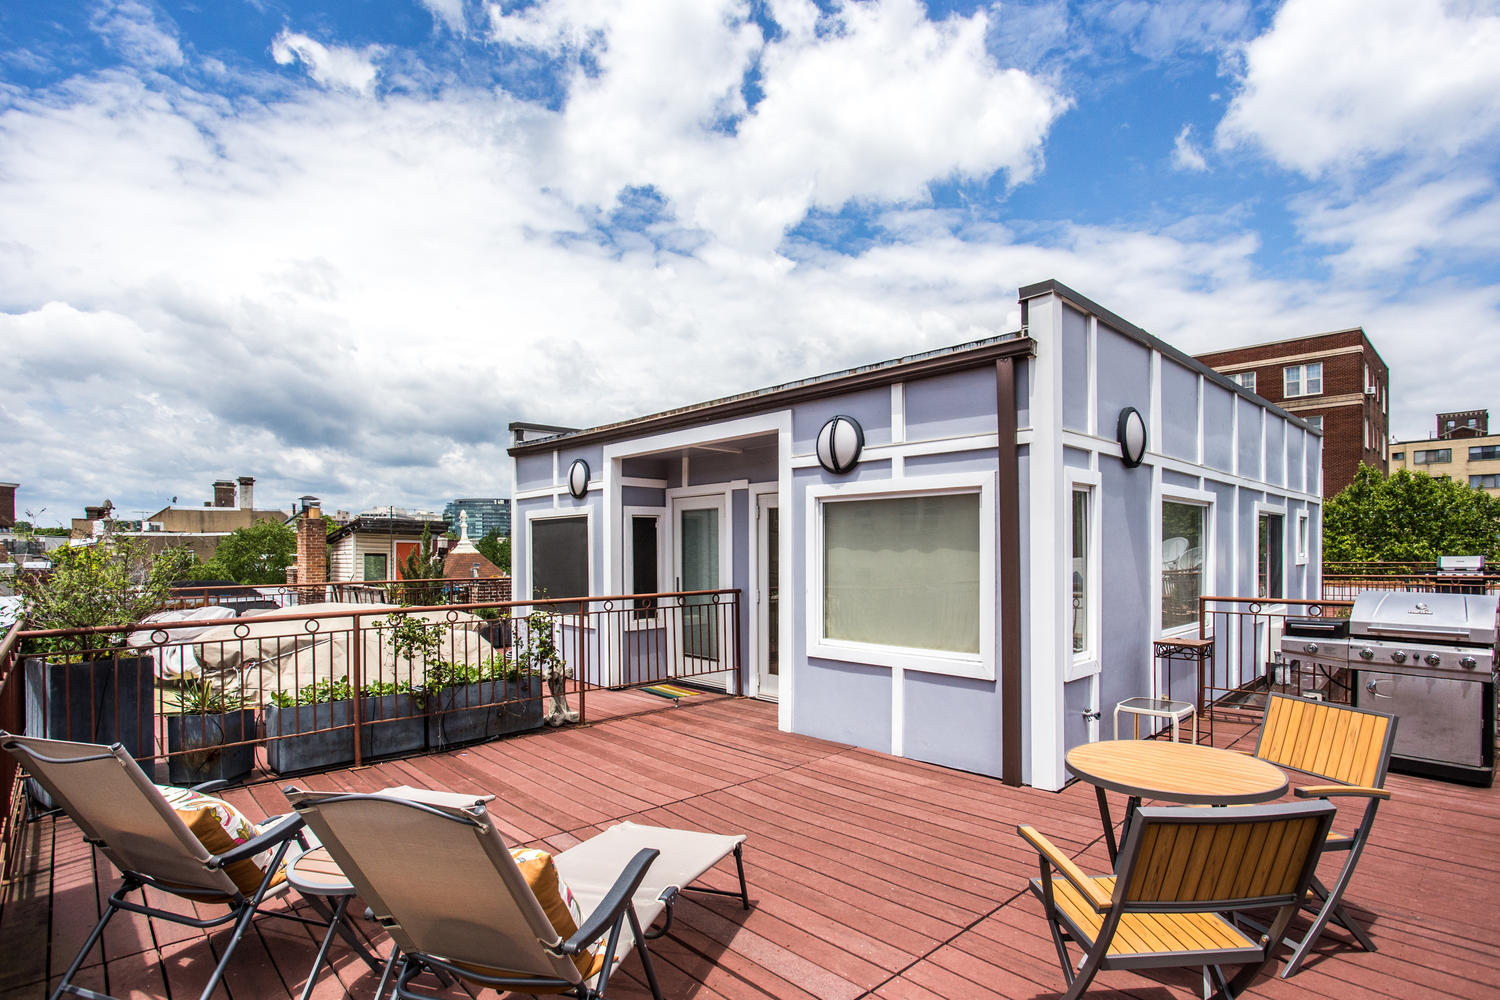 1632 16th St NW Unit 32-large-054-50-Rooftop Deck-1500x1000-72dpi.jpg